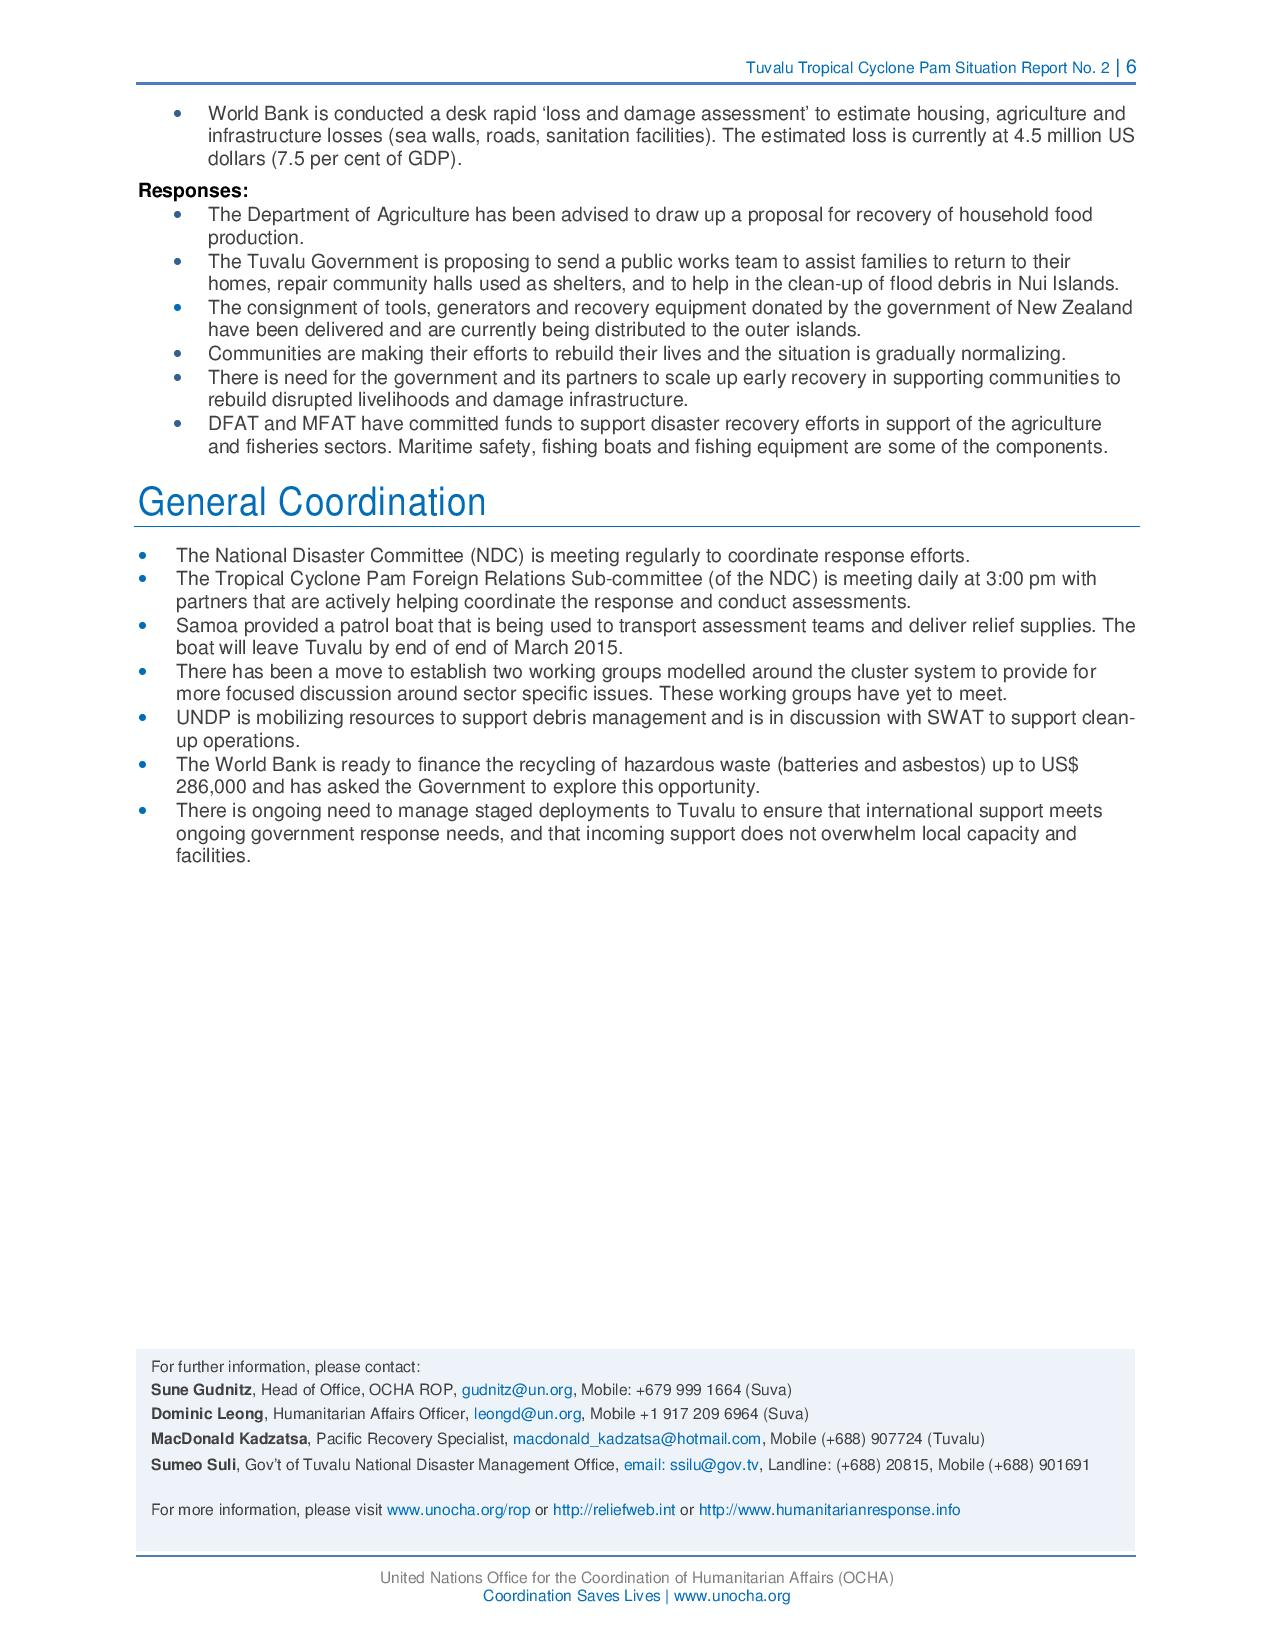 reliefweb.int_sites_reliefweb.int_files_resources_Tuvalu Tropical Cyclone Pam Situation Report No. 2-page-006.jpg